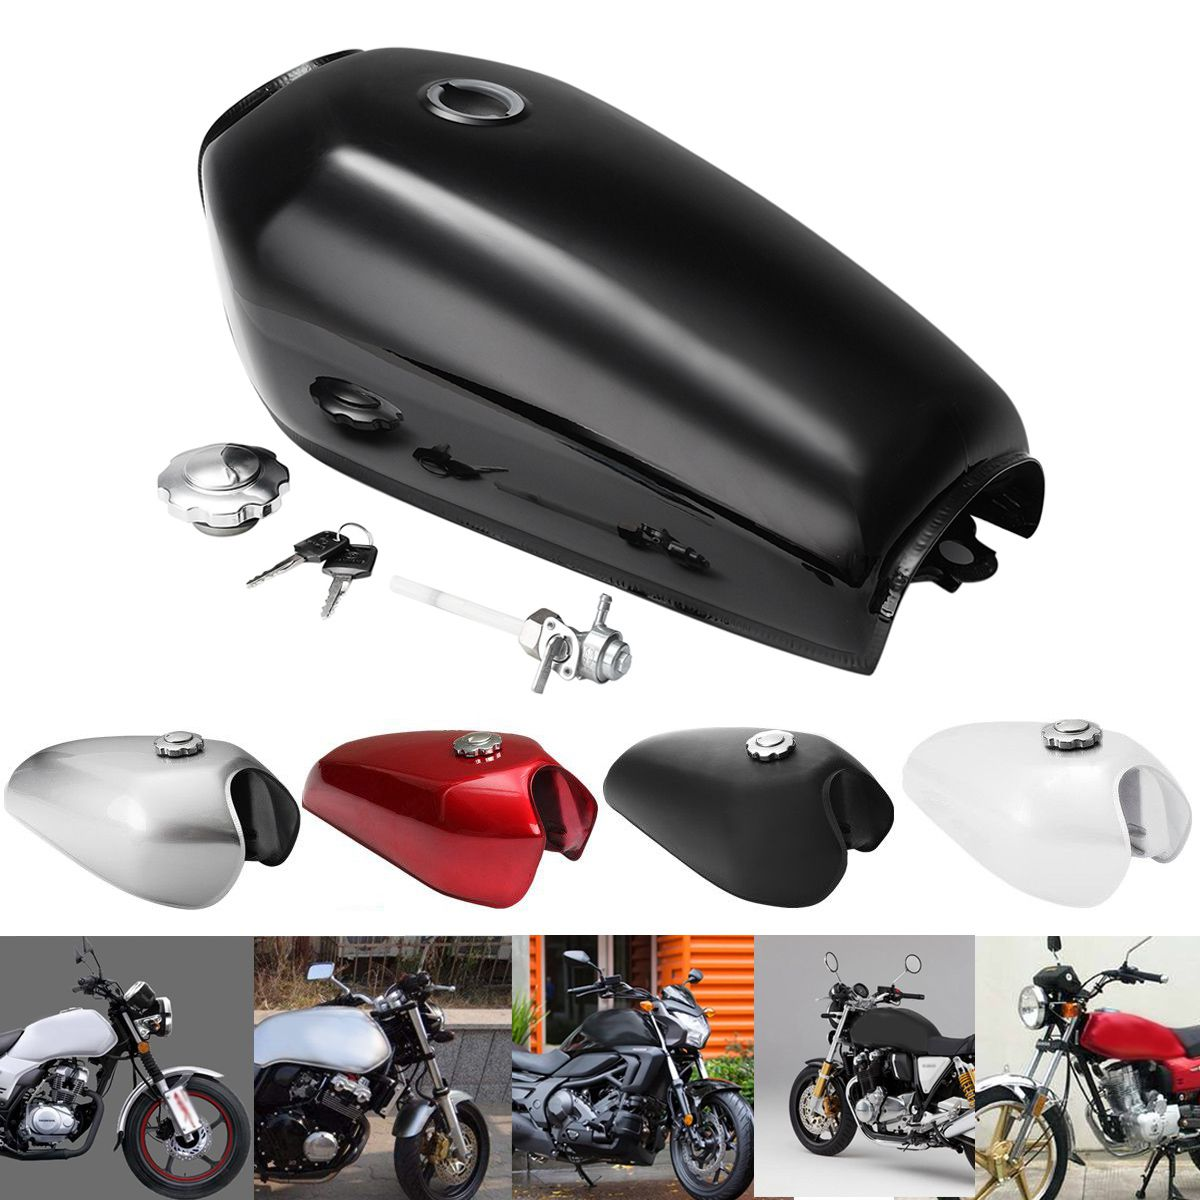 Motorcycle Cafe Racer Vintage Fuel Gas Tank With Tap Fit For Honda CG125 AA001 l r pillion foot peg for honda c70 ct90 cb125 cb200 cg110 cg125 jx110 jx125 xl250 xl350